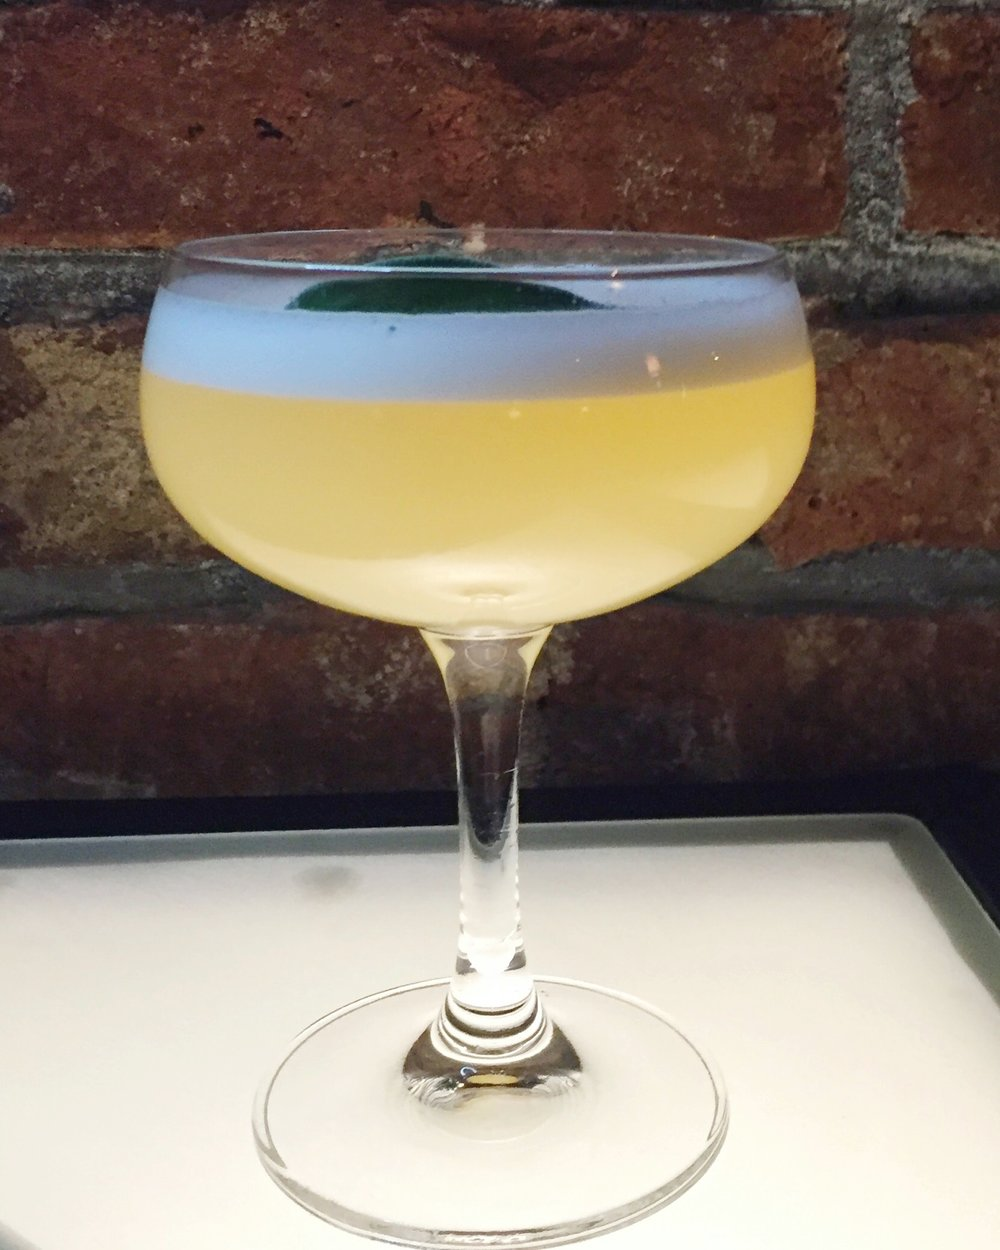 Great King Street Glasgow Scotch Whiskey Blend, Lemon Juice, Cyril Zangs Eau de Vie de Cidre, The King's Ginger, Egg White, Honey, Sage.